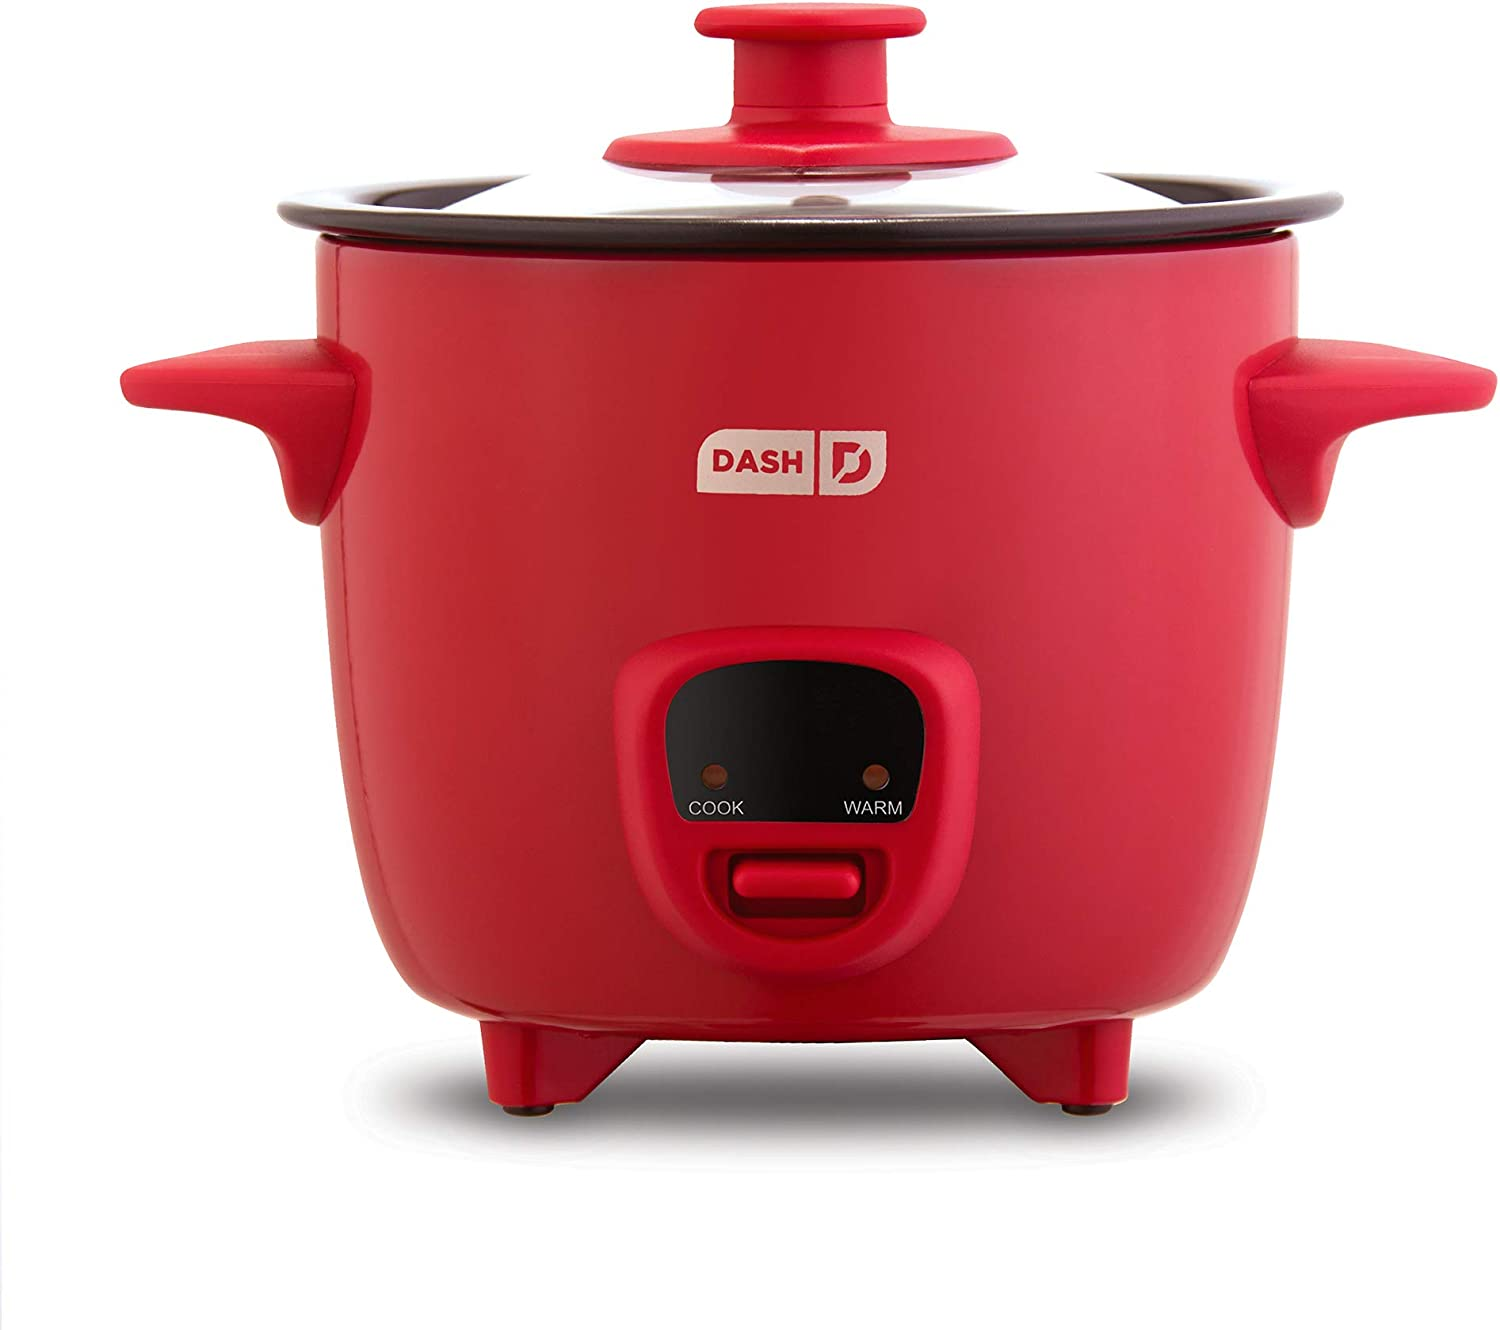 Amazon.com: Dash DRCM200GBRD04 Mini Rice Cooker Steamer with Removable  Nonstick Pot, Keep Warm Function & Recipe Guide, Red: Kitchen & Dining